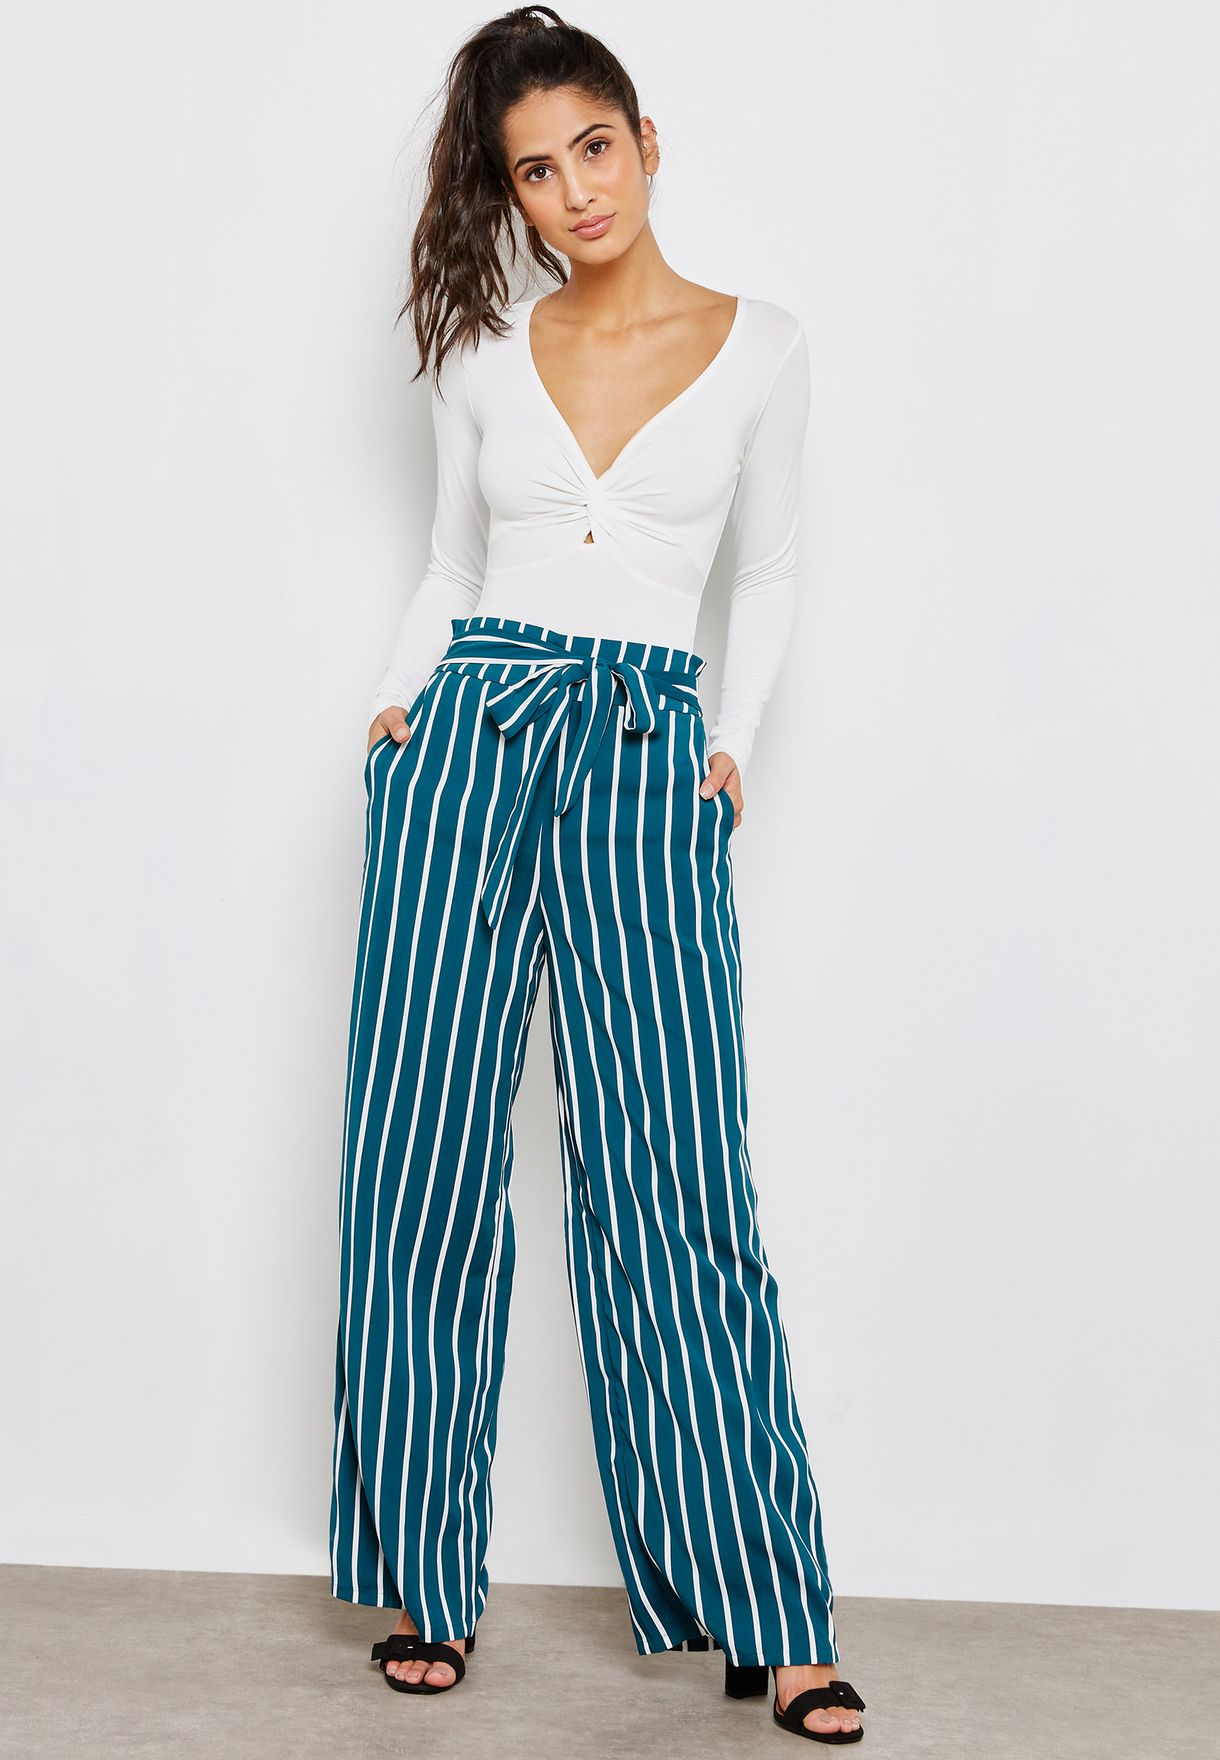 b6b56fb7c59 Shop Forever 21 prints Striped Palazzo Pants 242245 for Women in ...